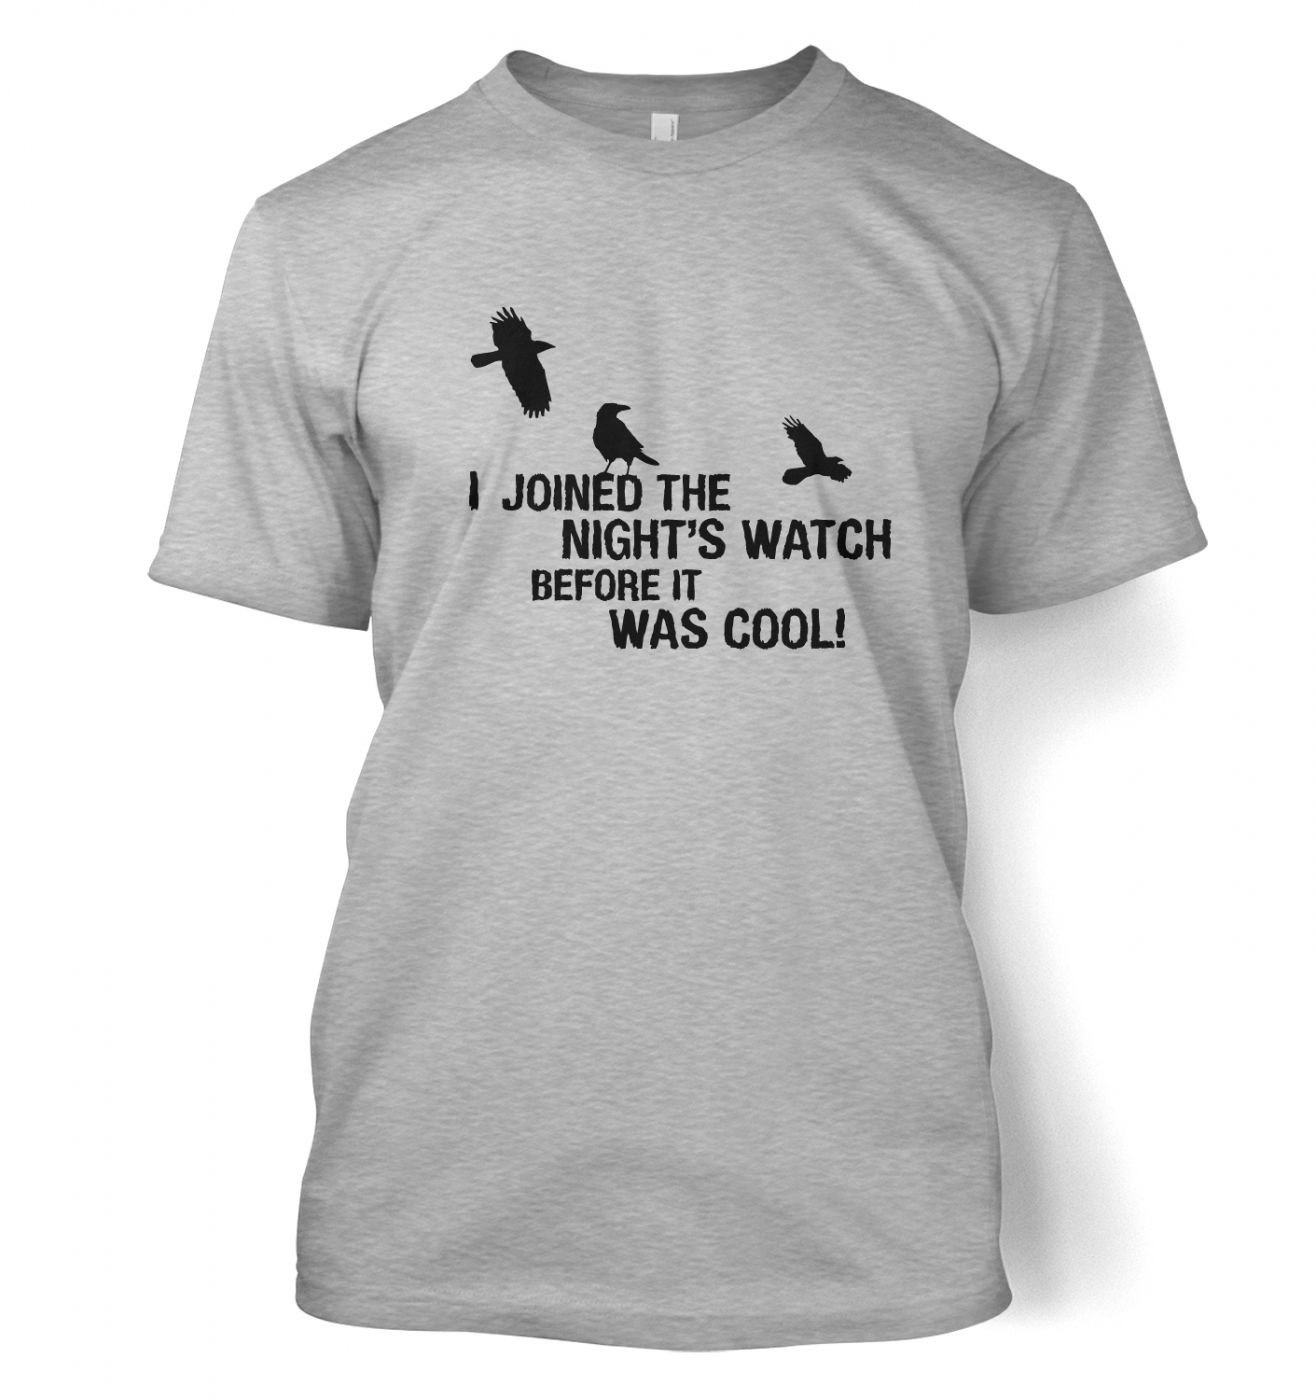 I Joined The Night's Watch t-shirt